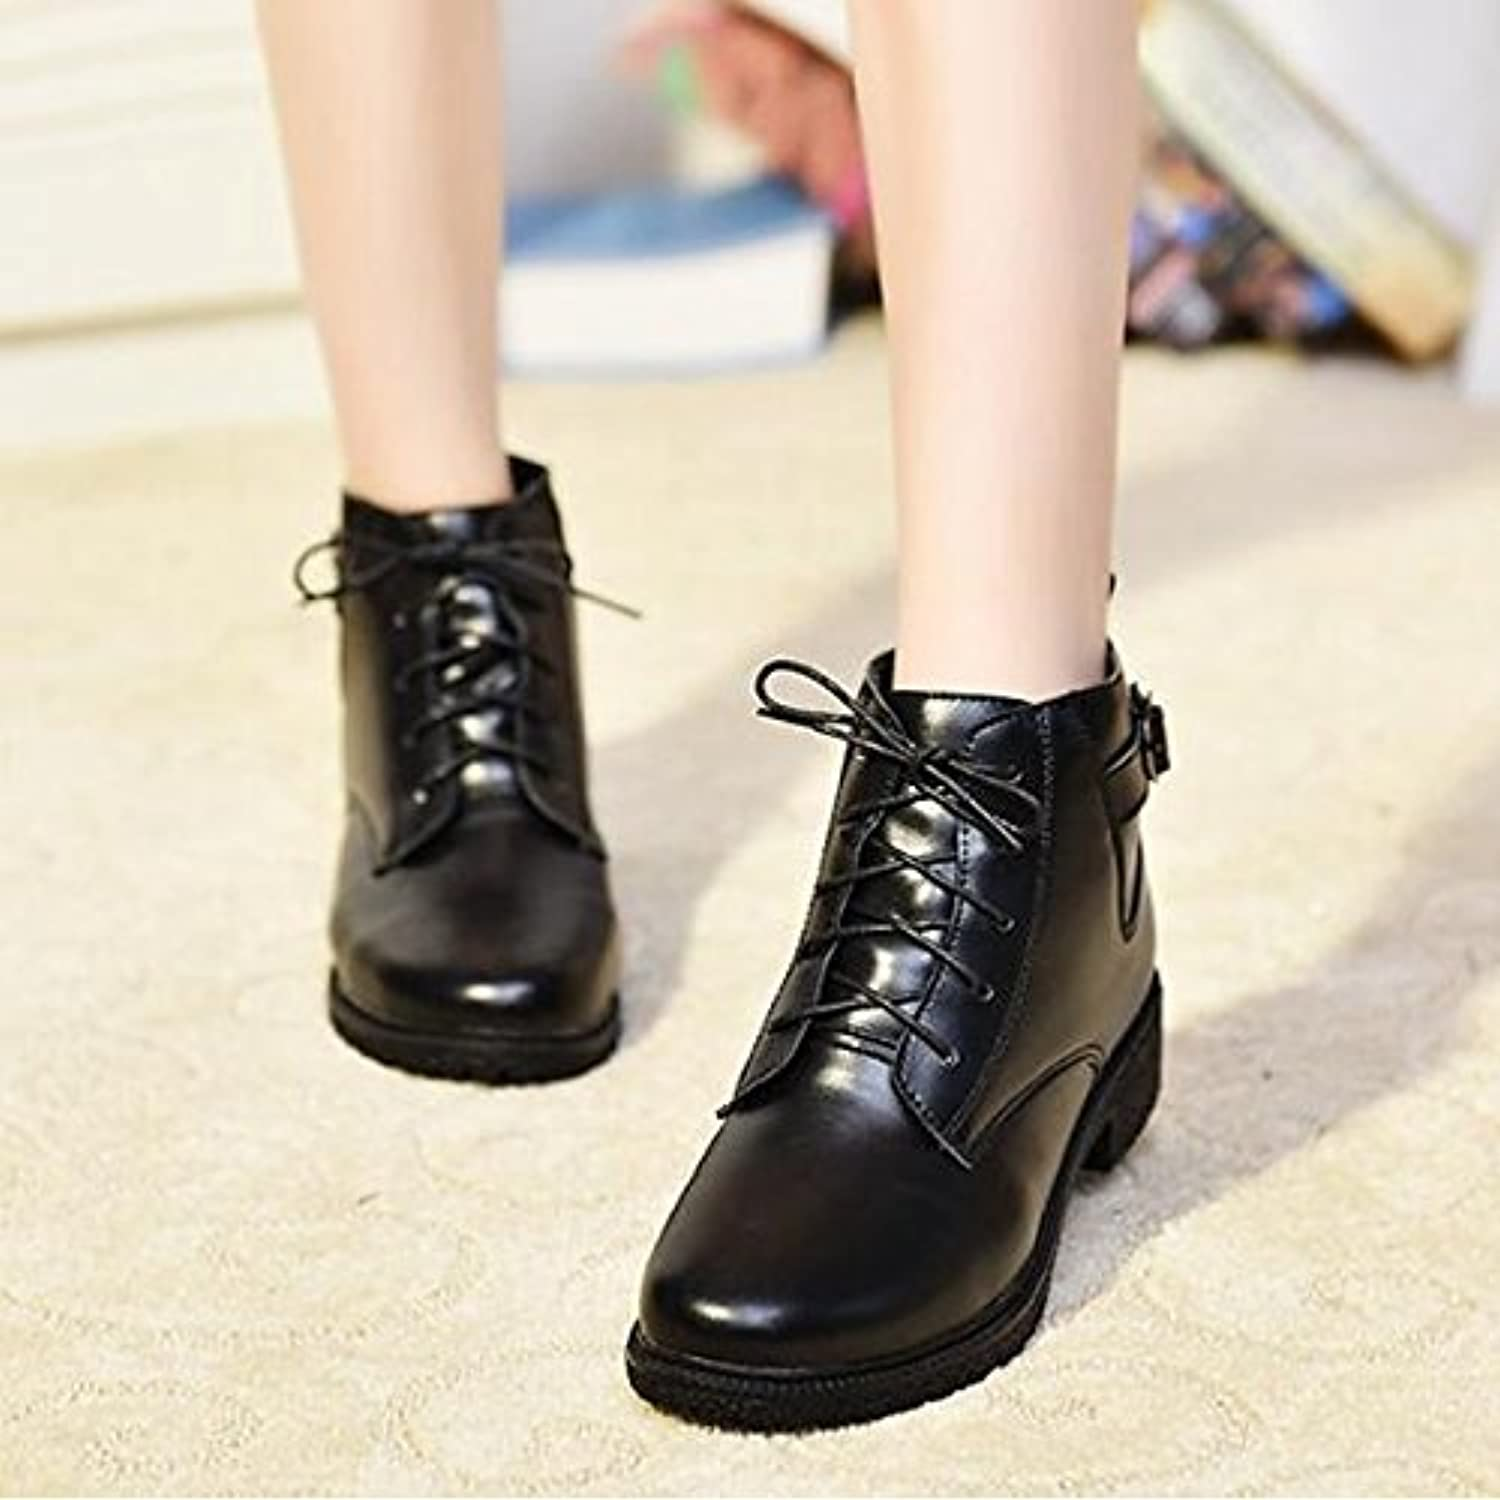 HSXZ Women's shoes Real Leather Winter Fall Combat Boots Fluff Lining Boots Flat Pointed Toe MidCalf Boots for Casual Black Brown